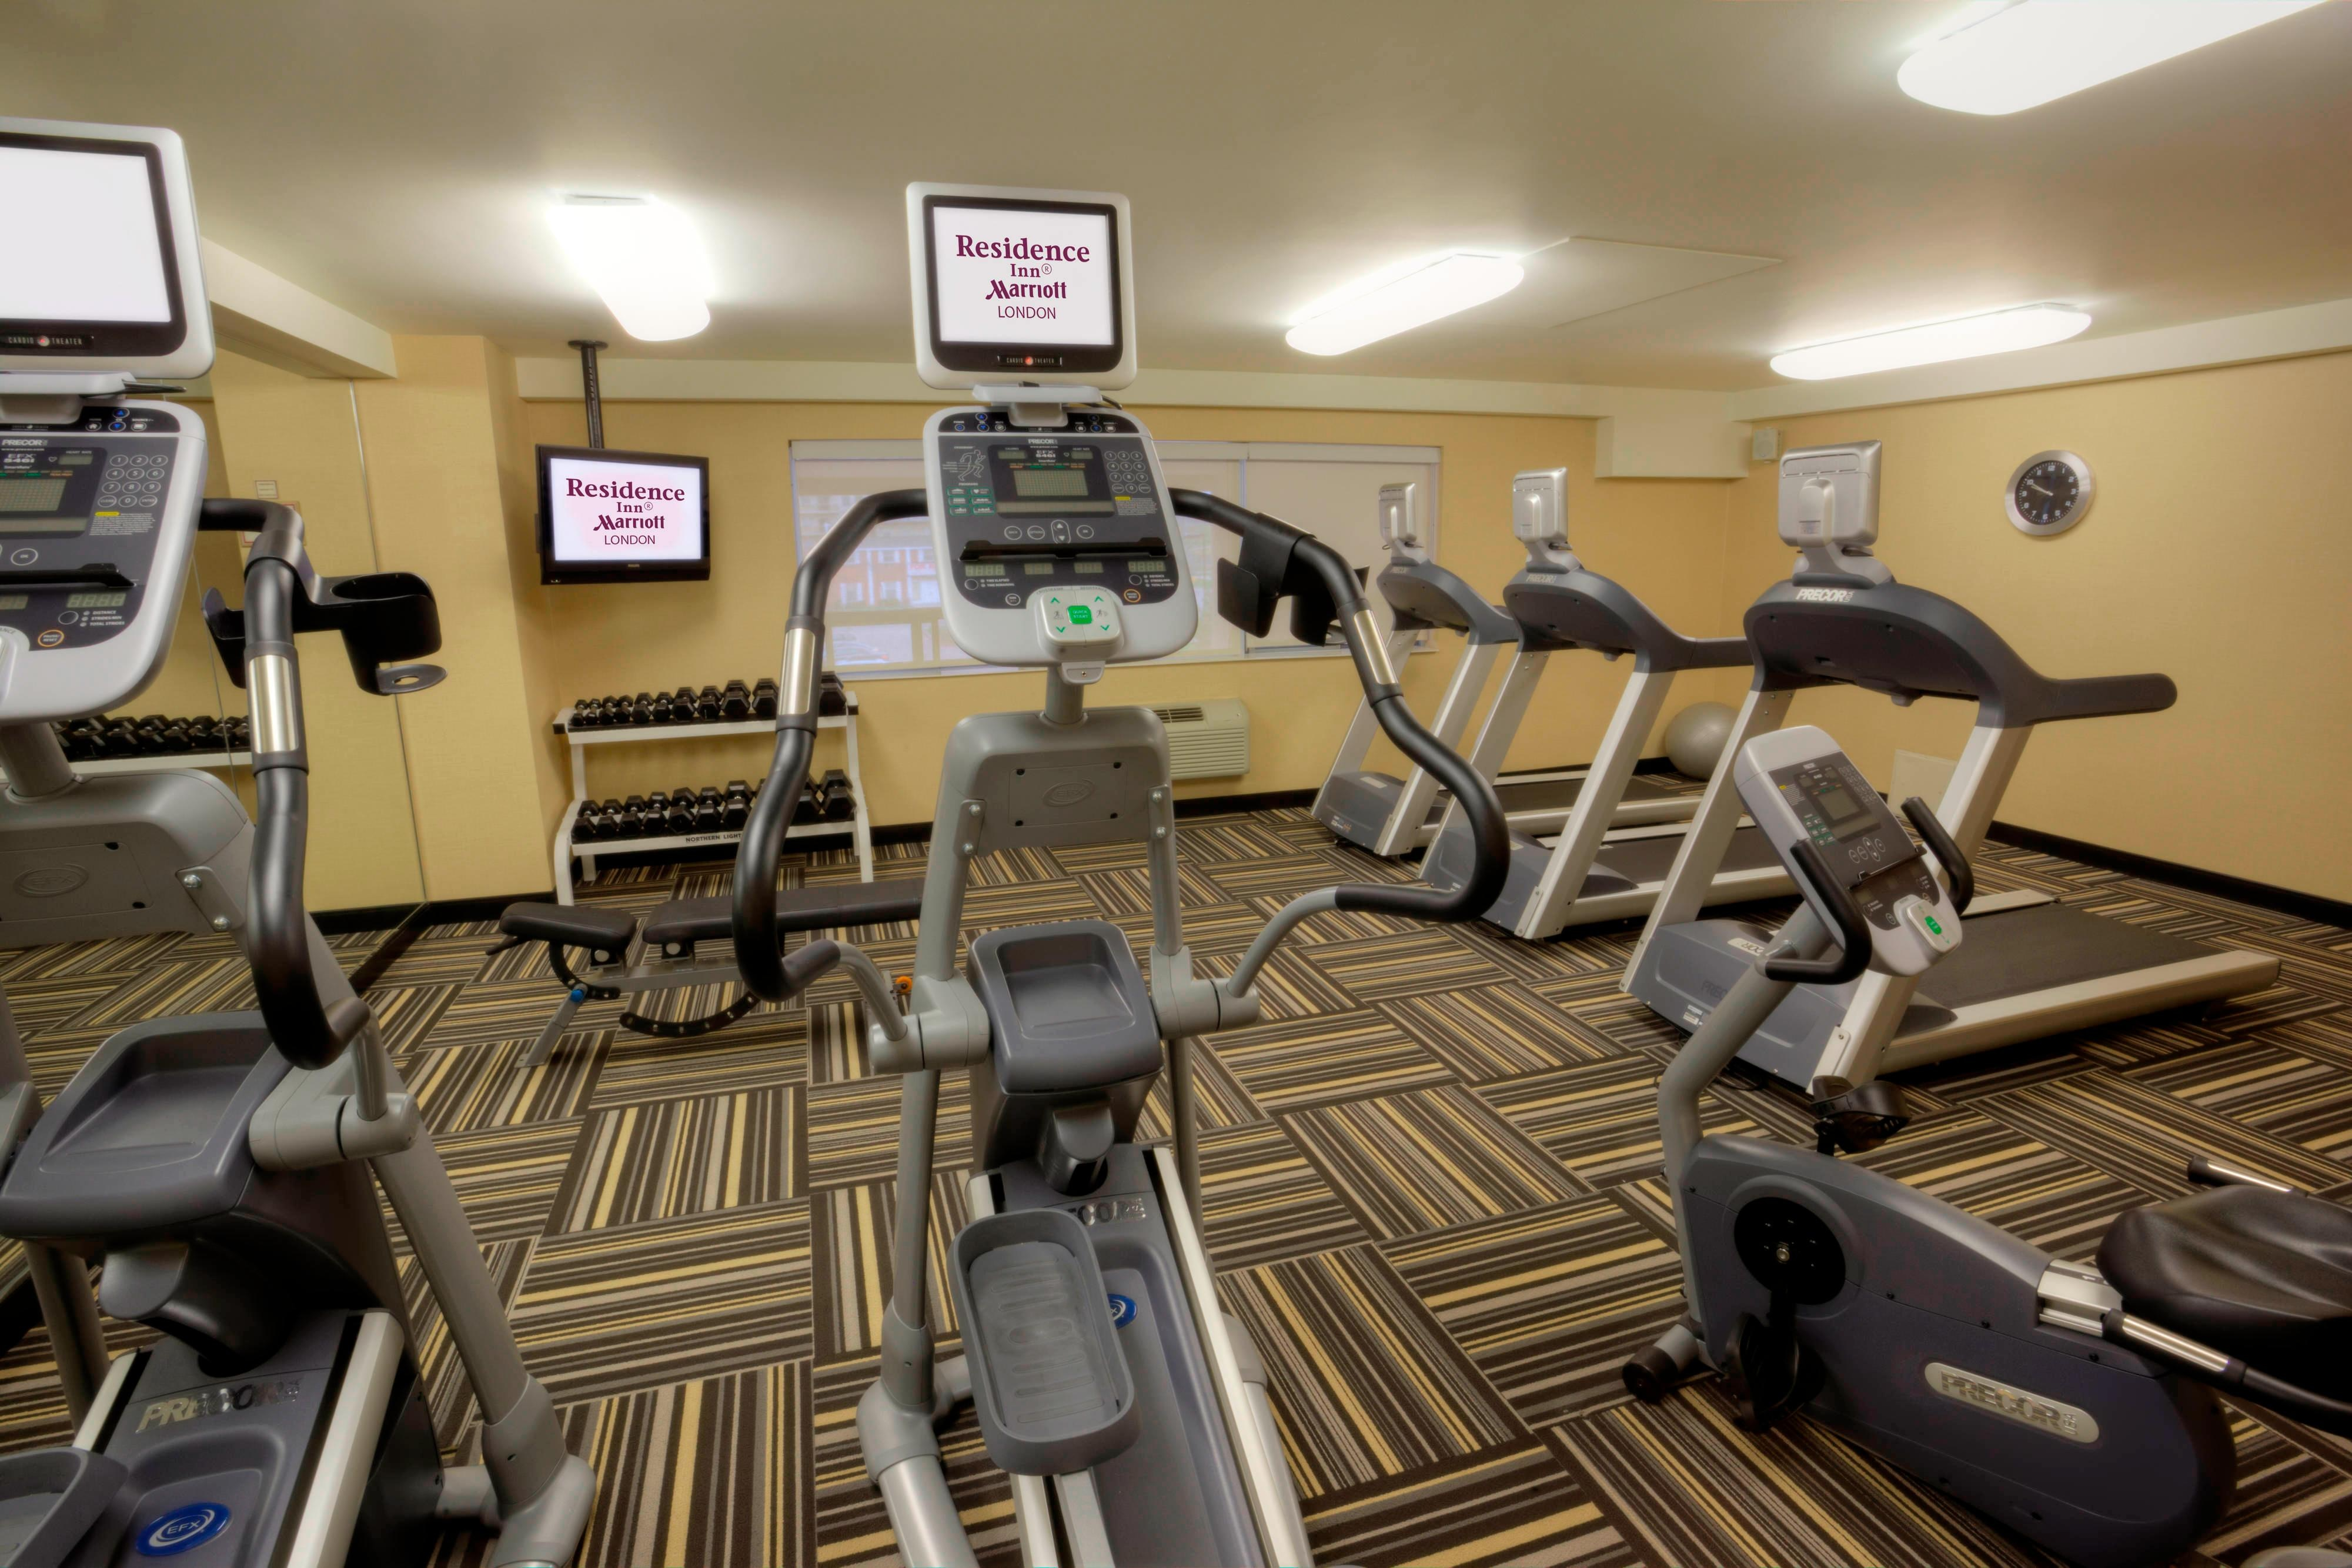 Centre de remise en forme du Residence Inn London